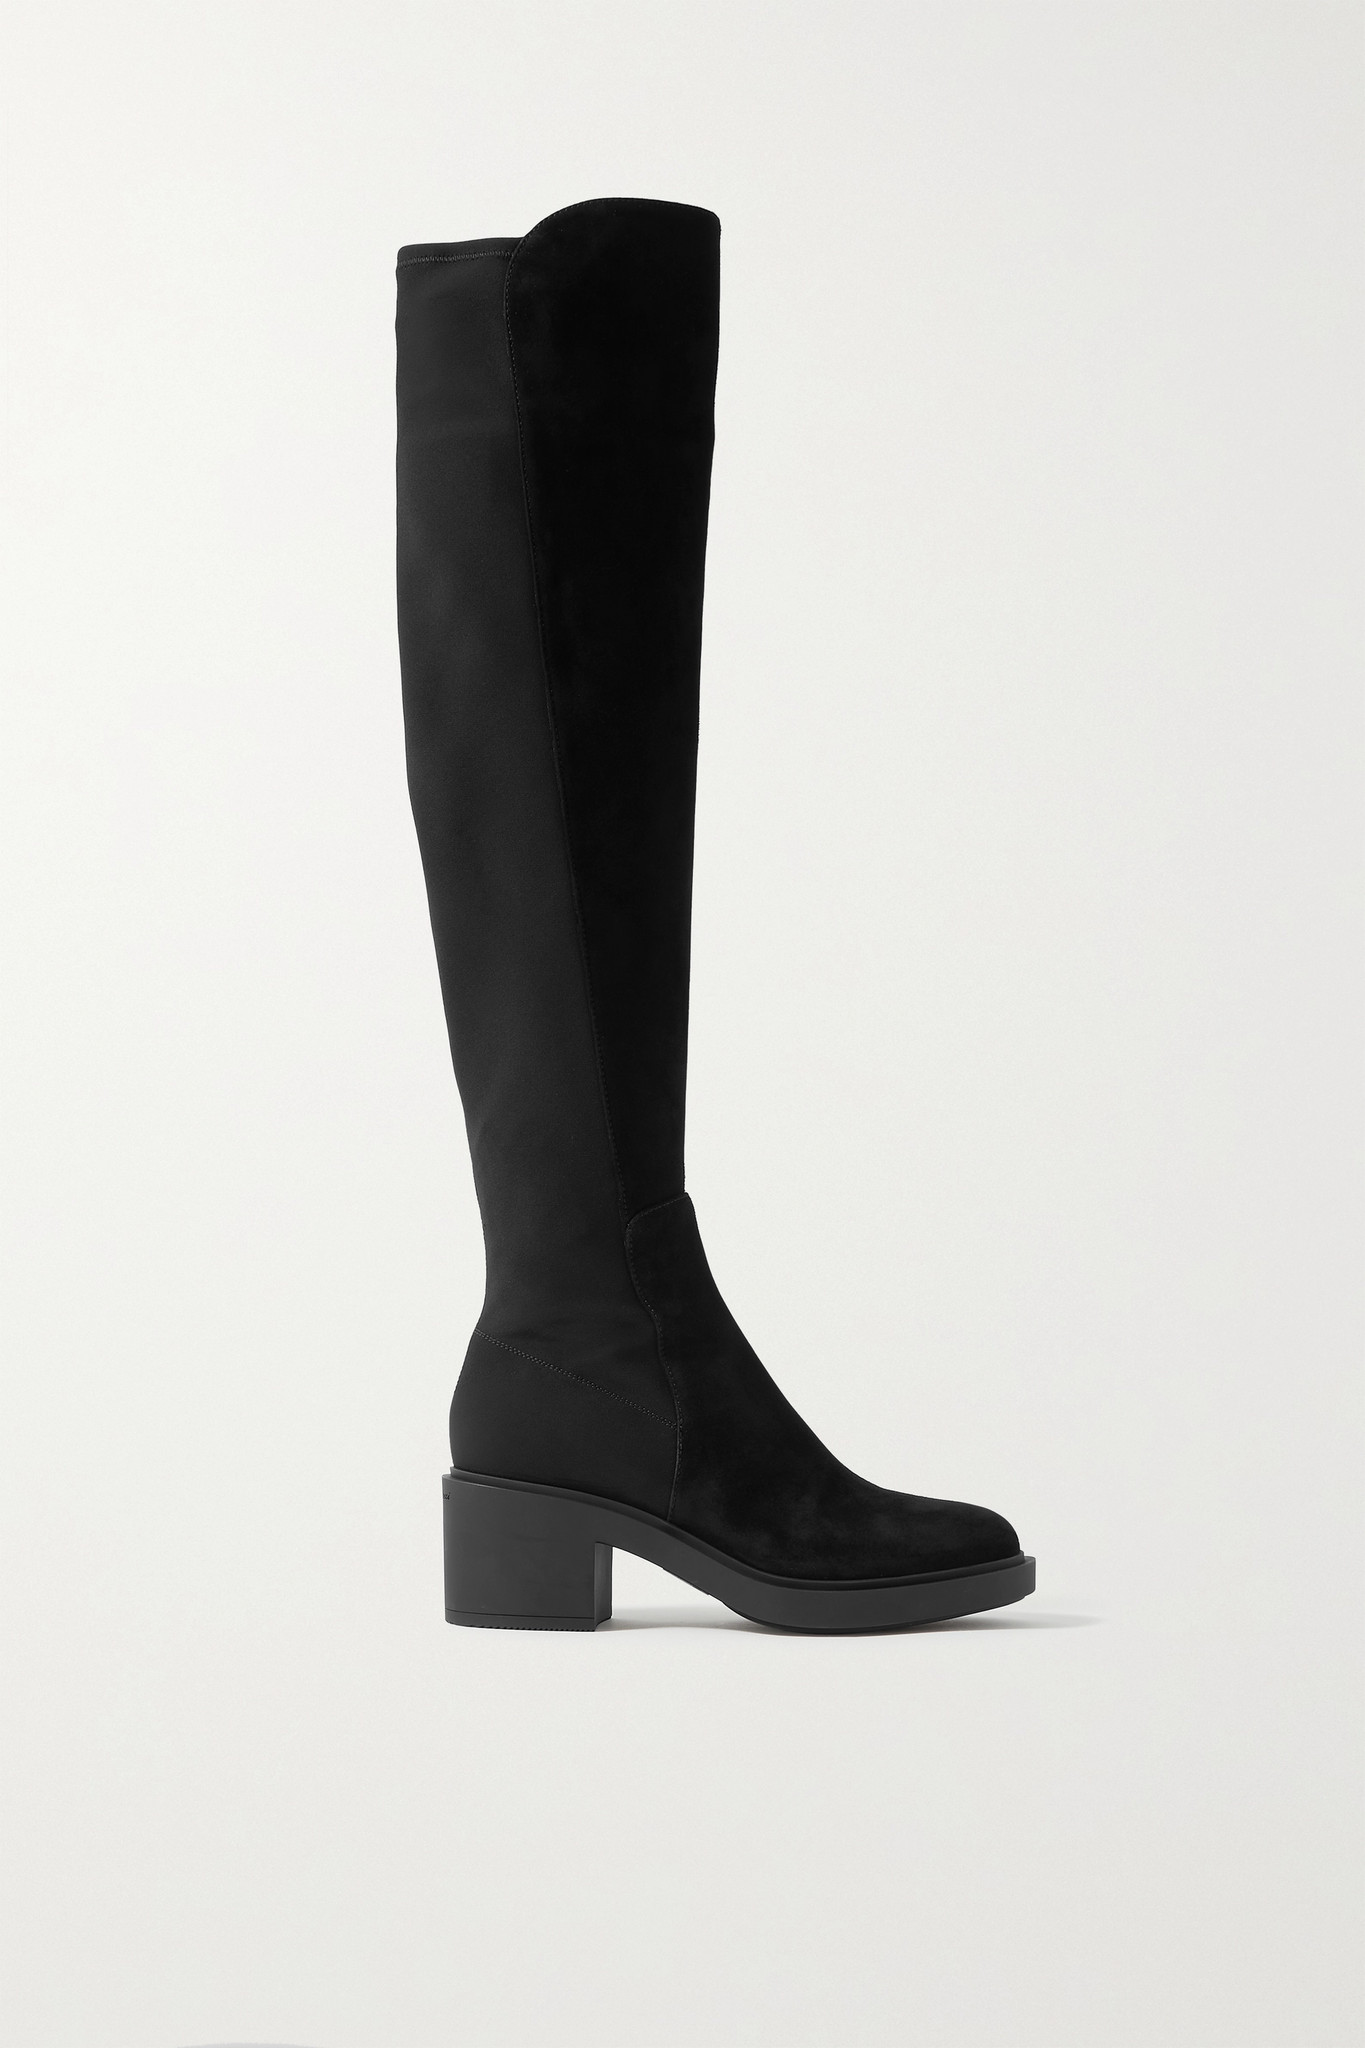 GIANVITO ROSSI - 45 Suede And Neoprene Knee Boots - Black - IT39